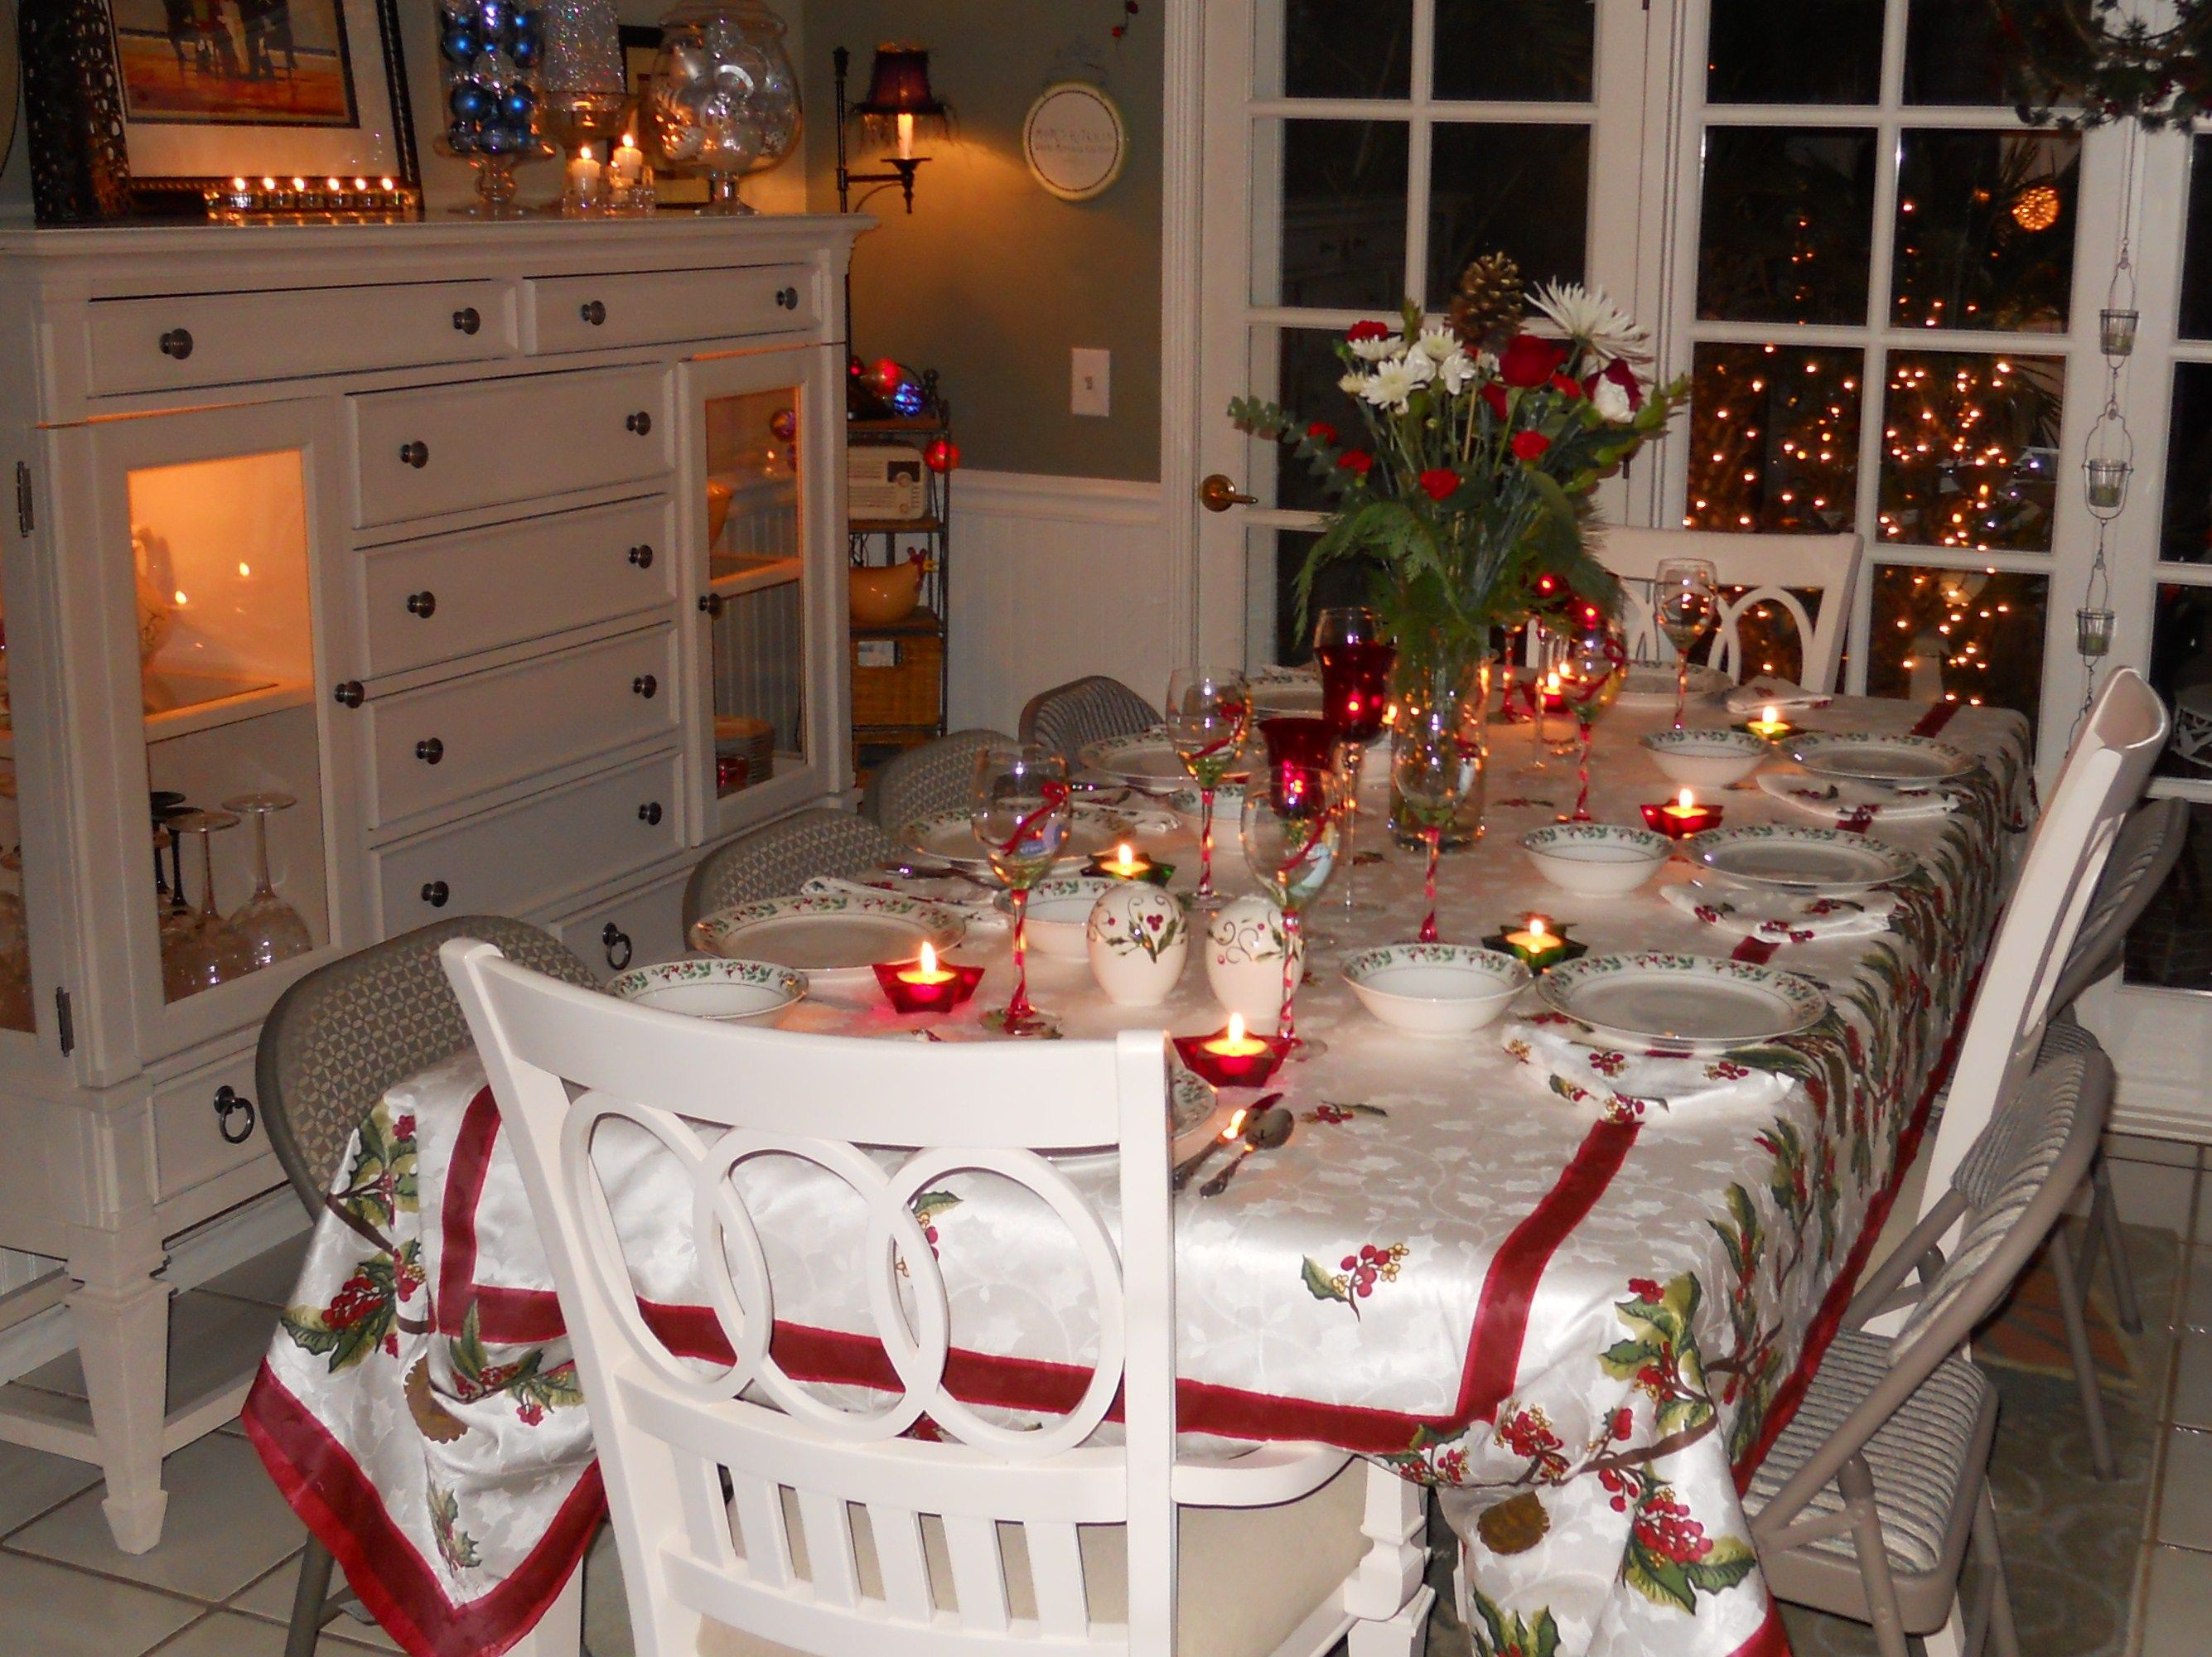 CHRISTMAS TABLE SETTINGS | ... Christmas Season At Beautiful Table ...